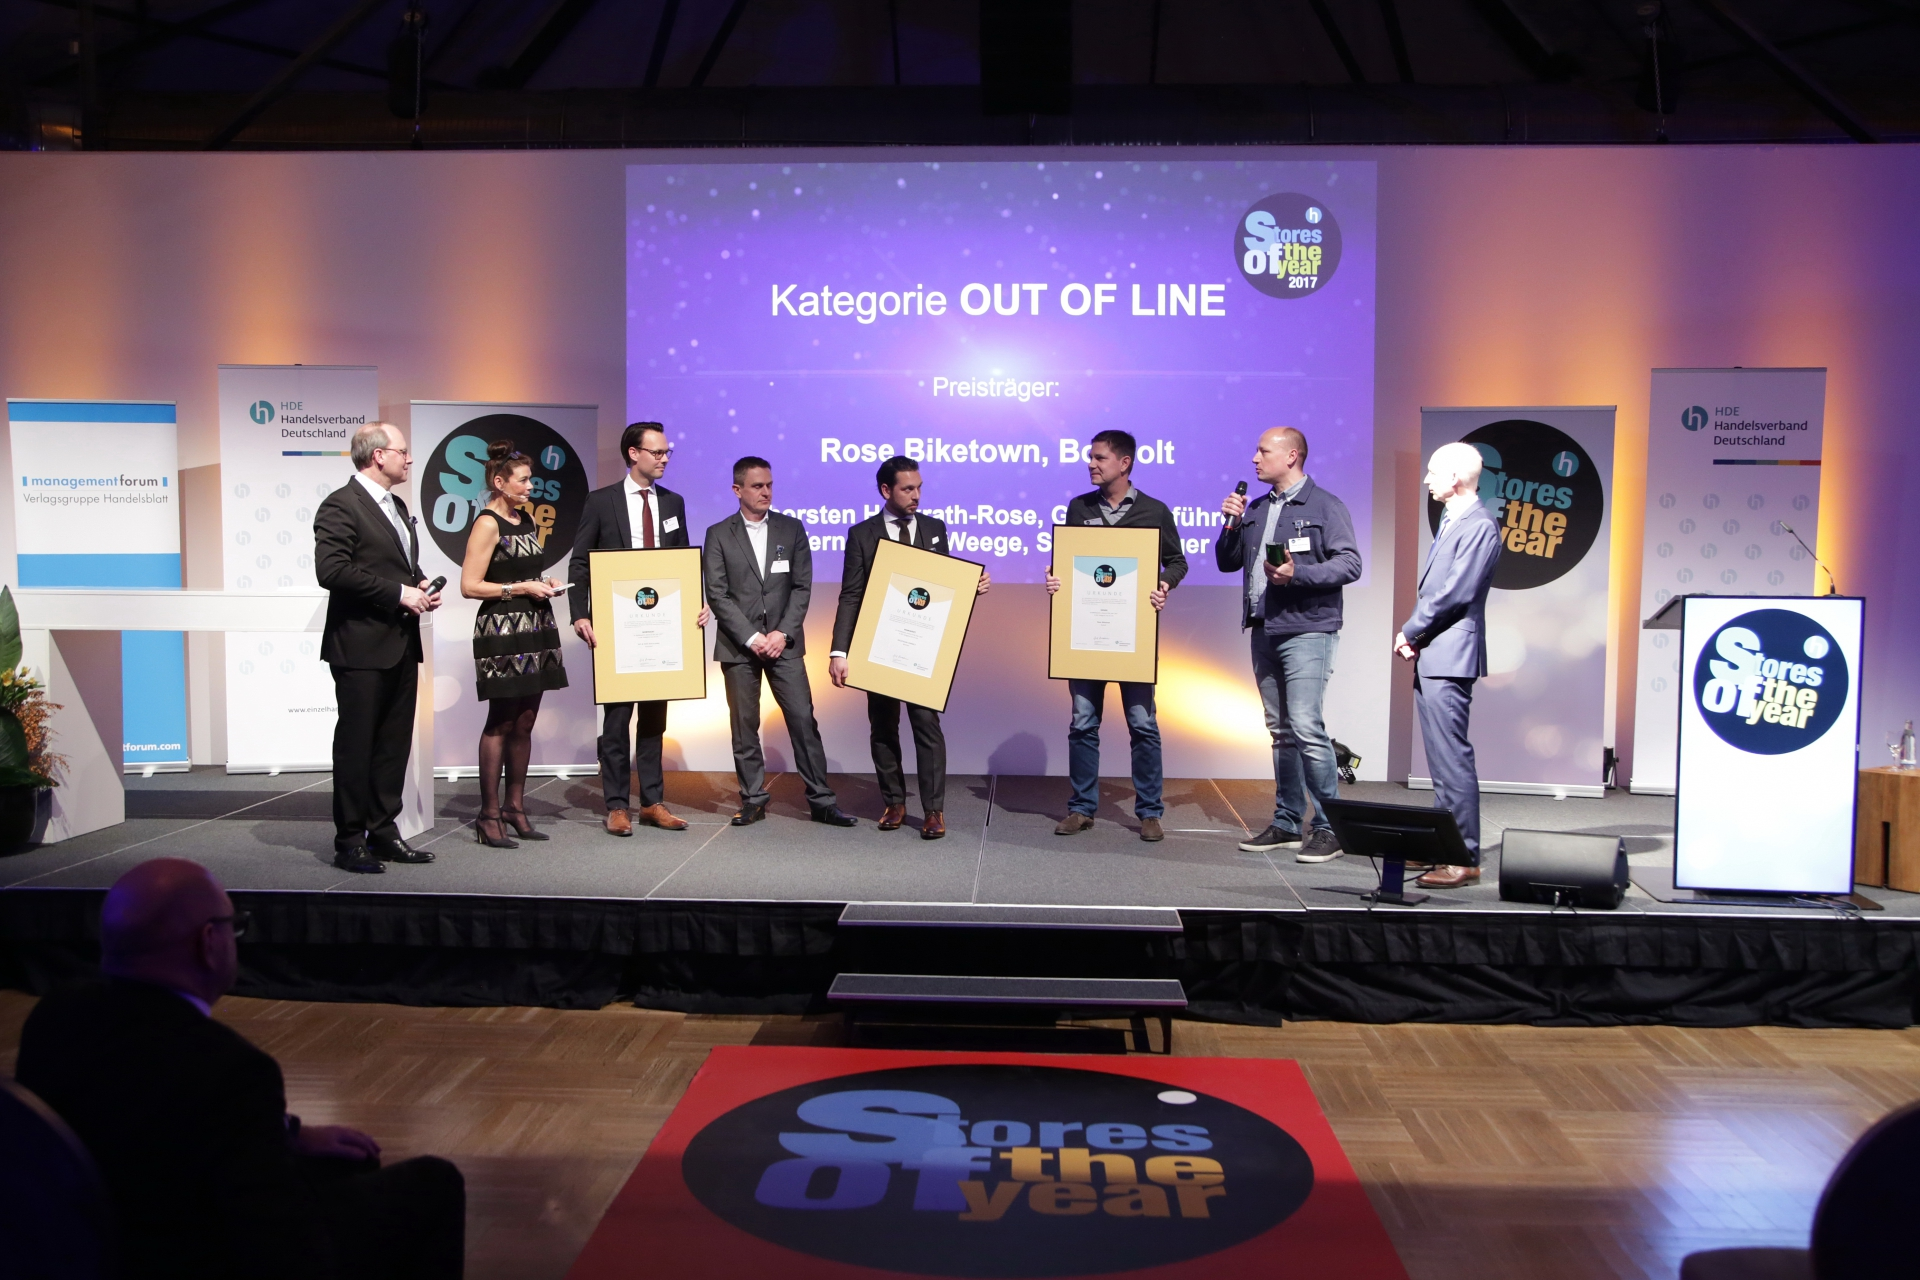 Rose Bikes - Store of the Year 2017